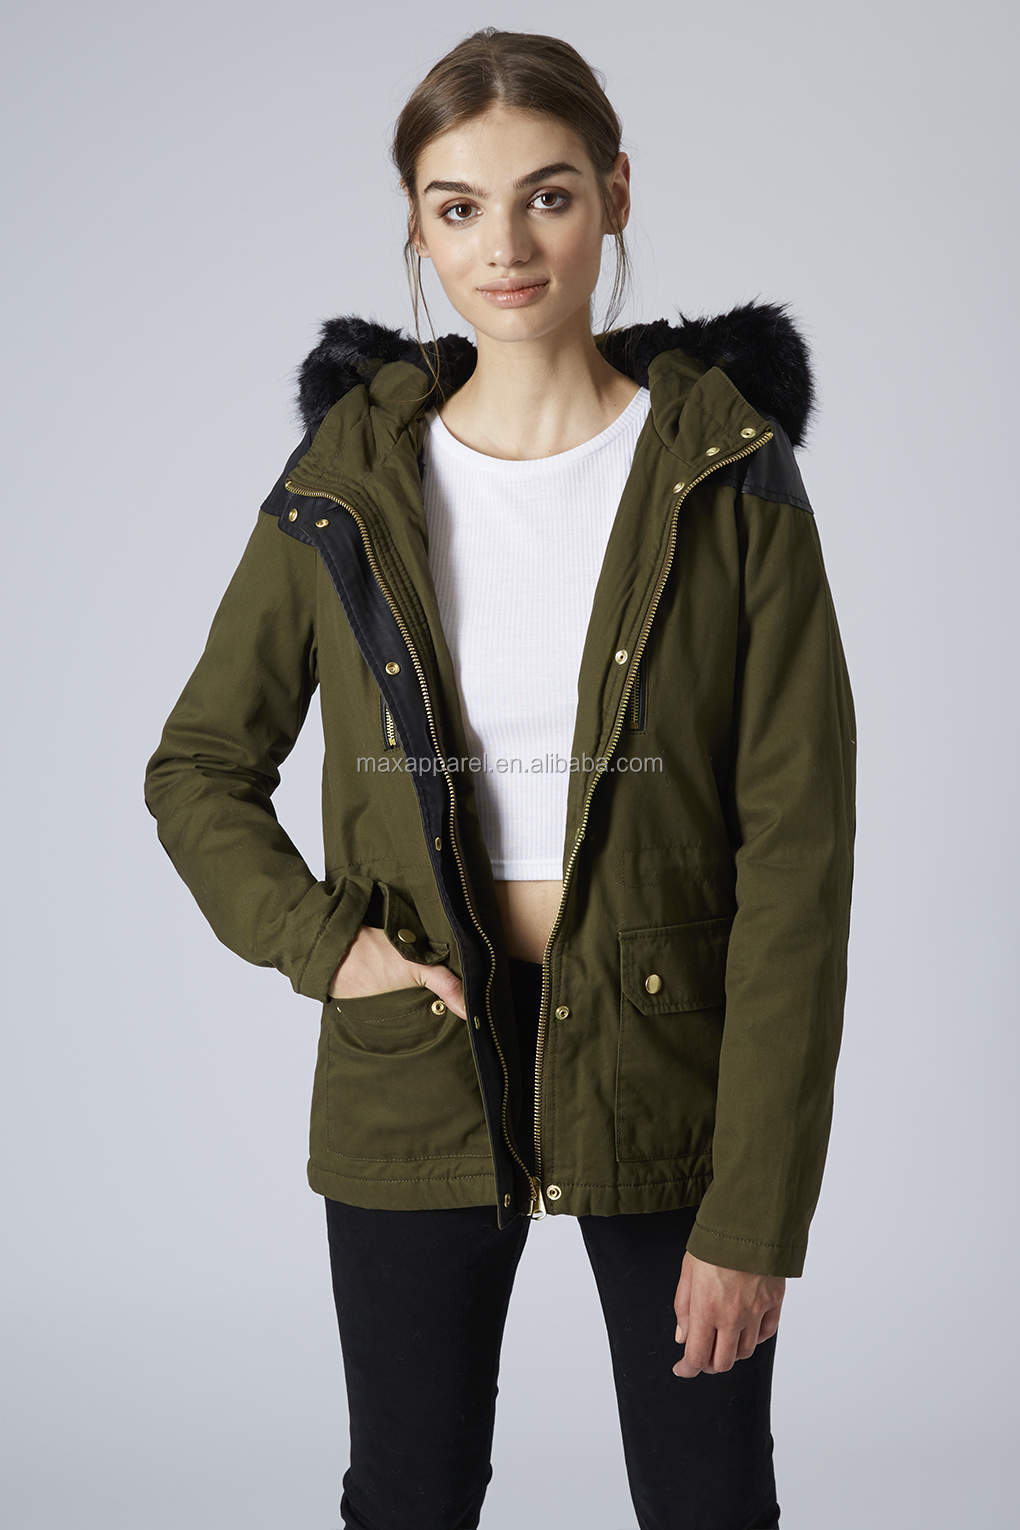 Ladies Short Parka Jackets | Jackets Review